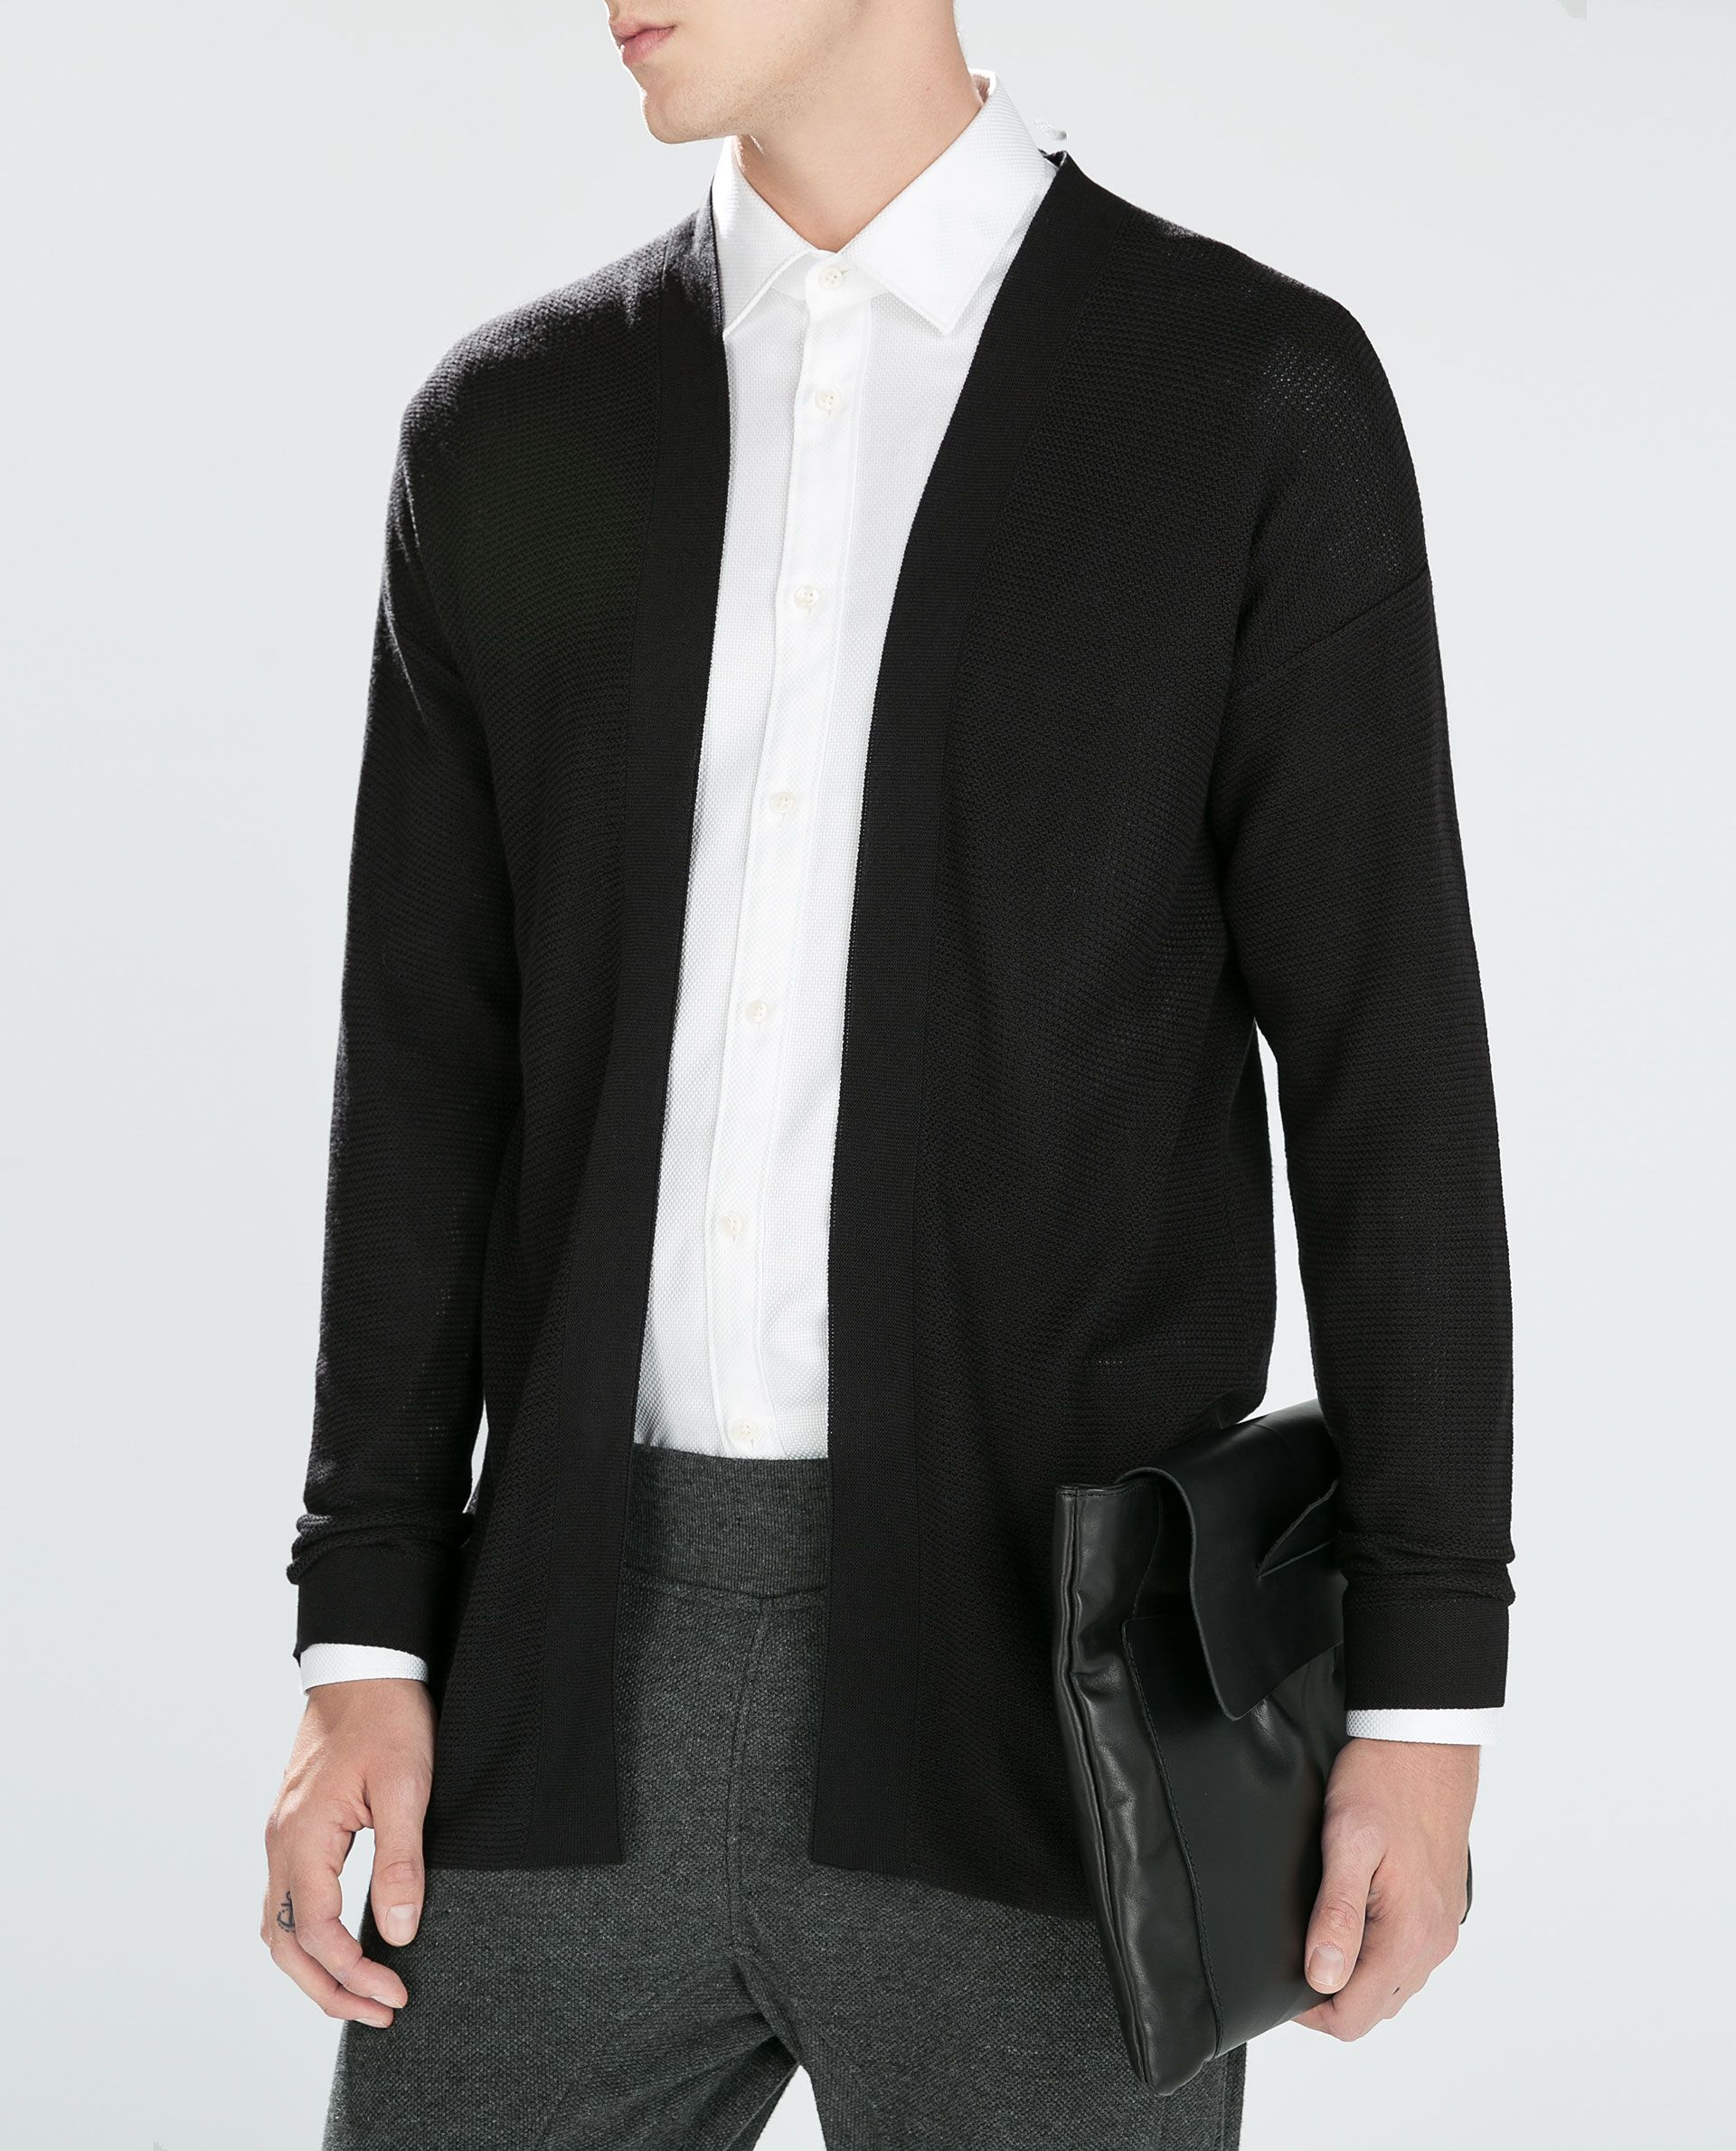 Zara Man Open Jacket Clothes, Shoes & Accessories Men's Clothing